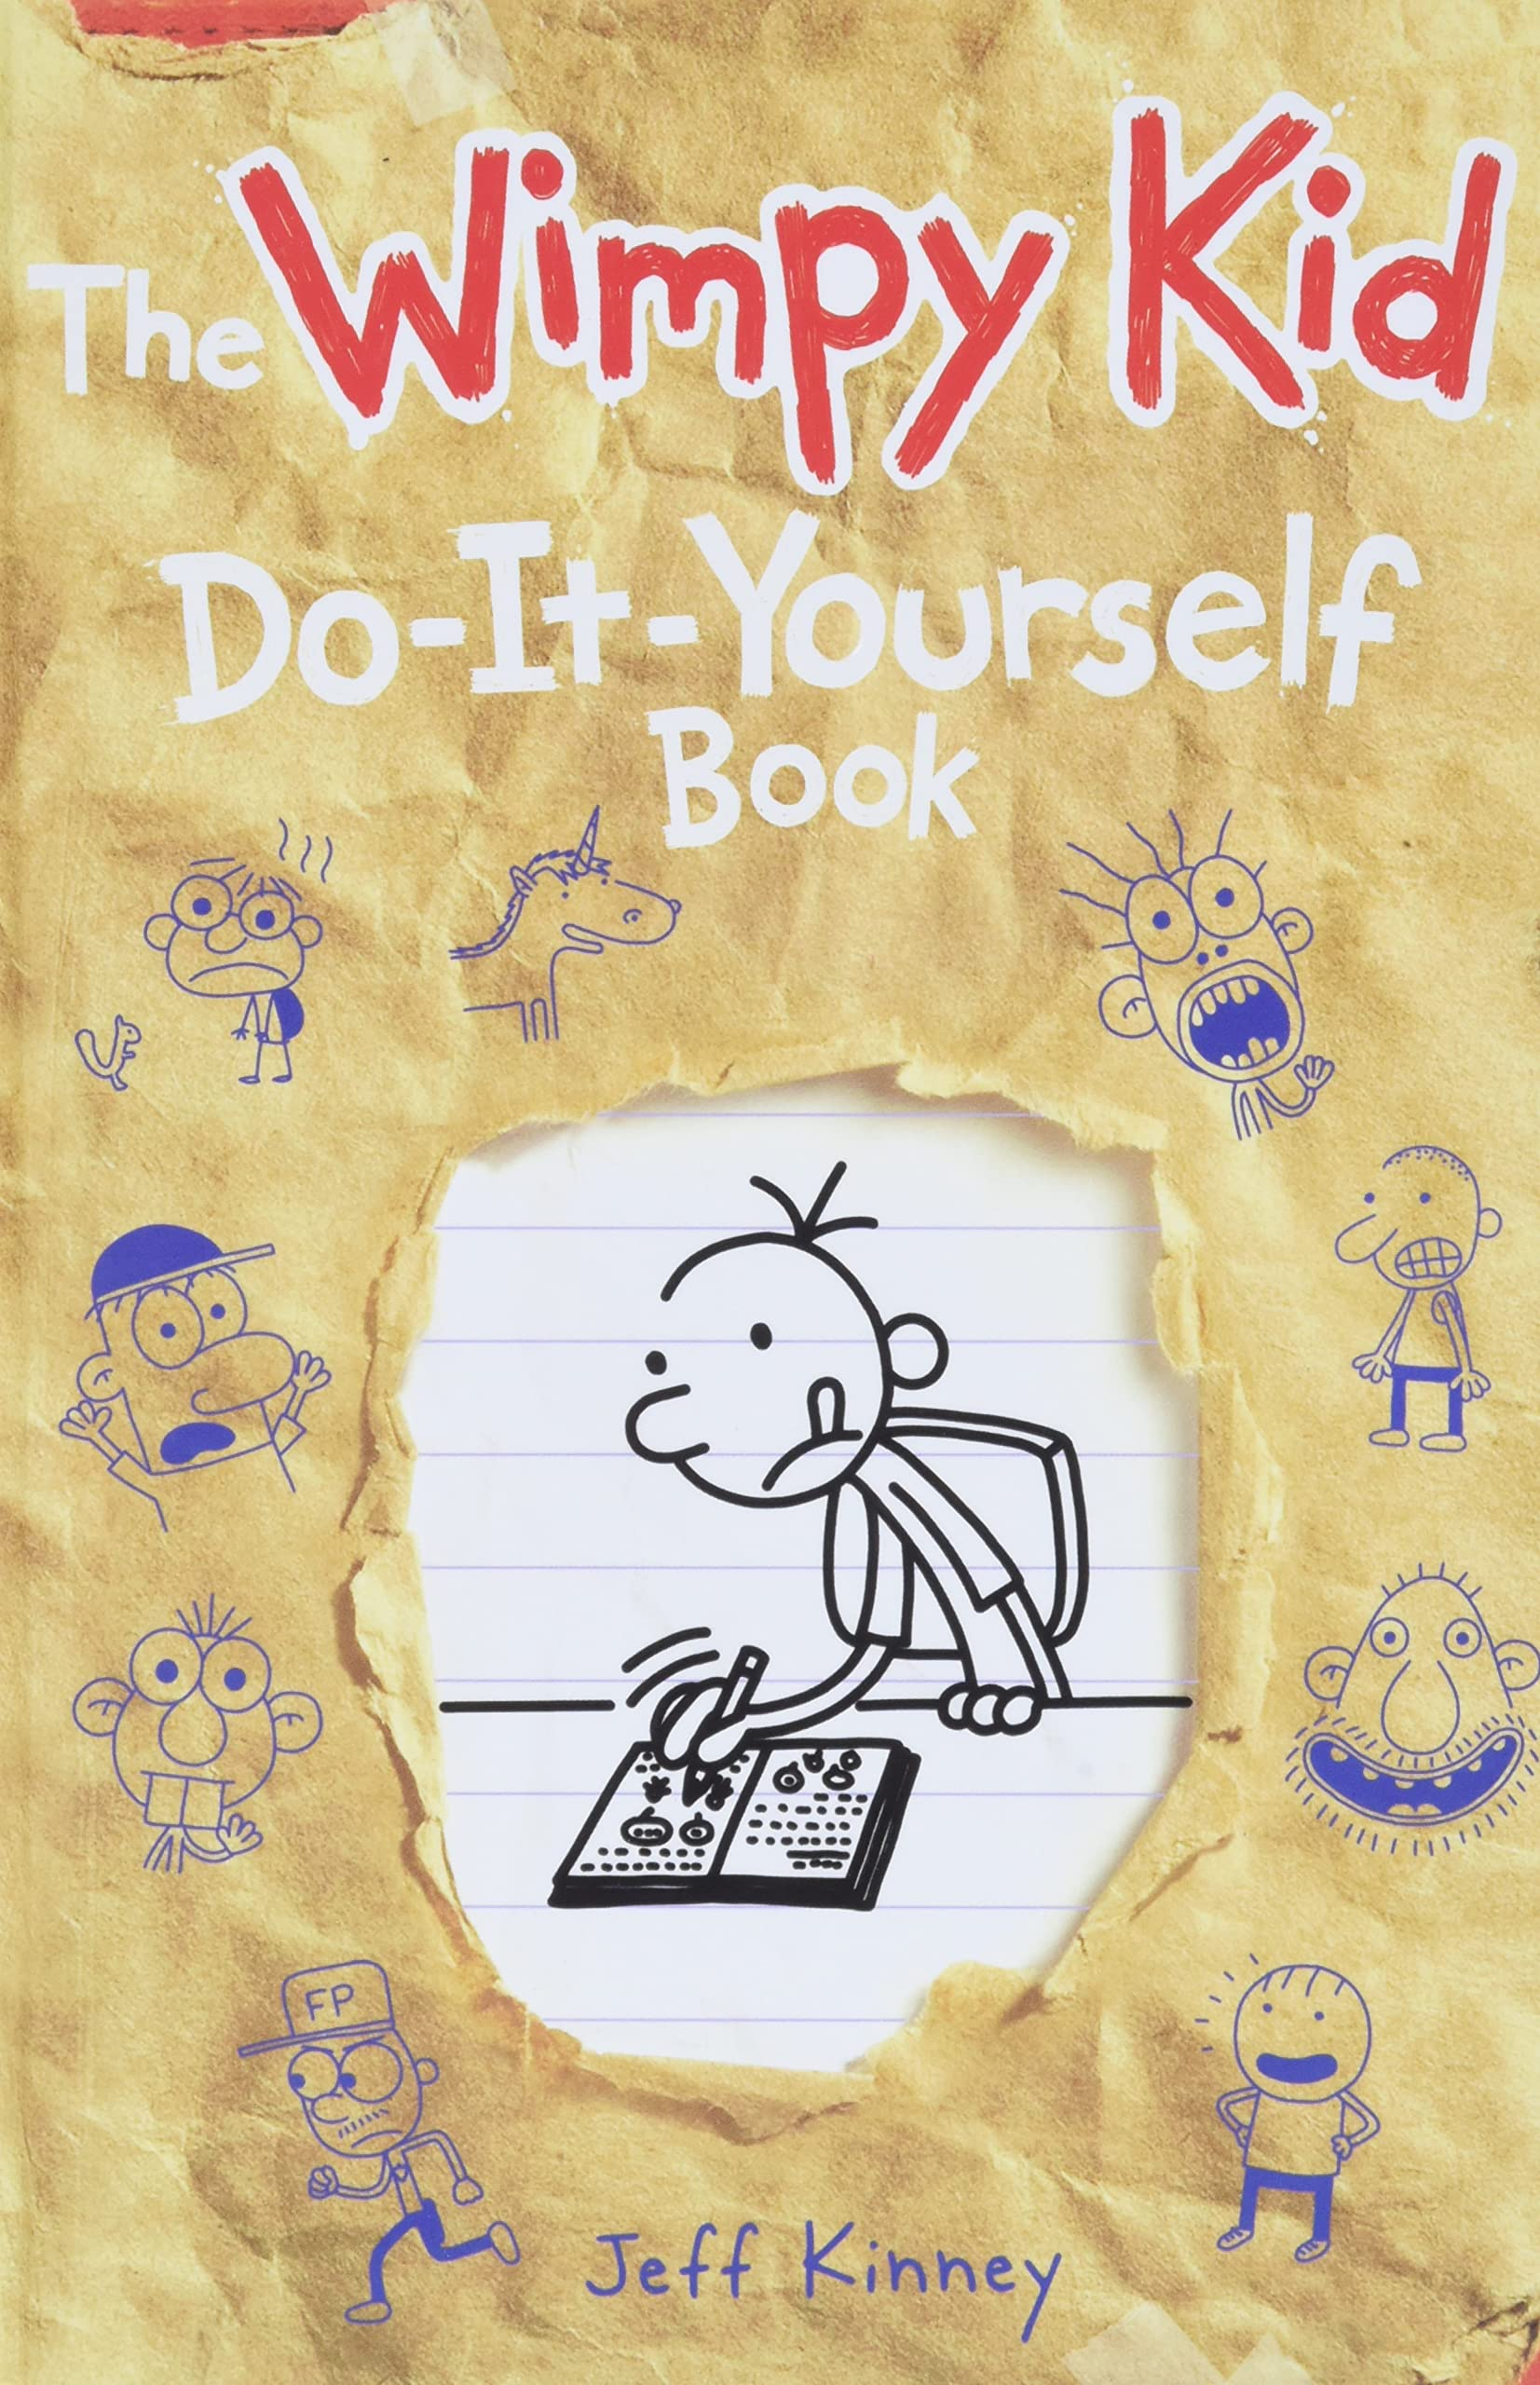 The wimpy kid do it yourself book diary of a wimpy kid wiki the wimpy kid do it yourself book solutioingenieria Choice Image